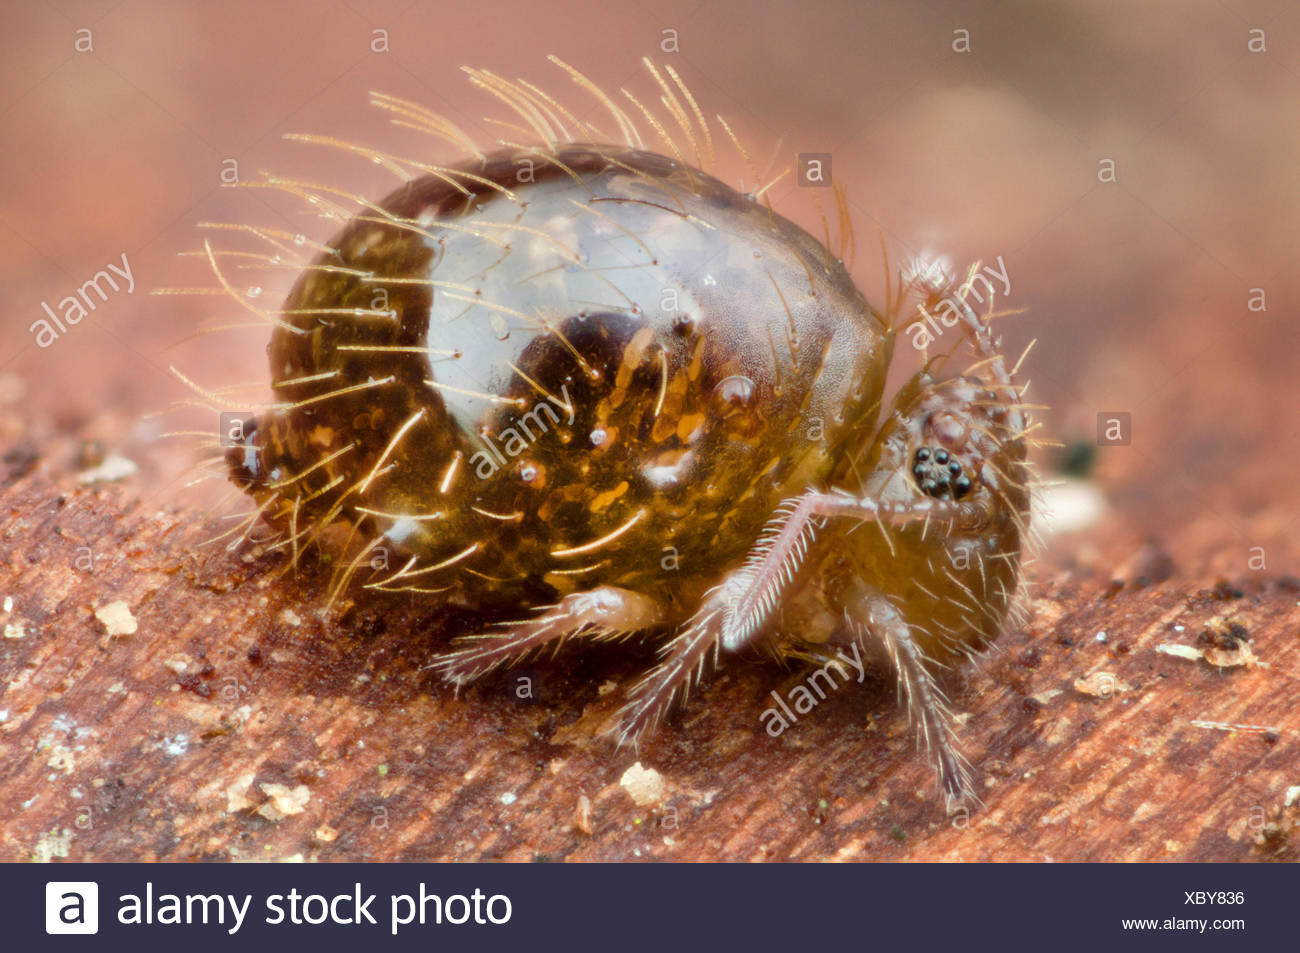 Springtail (Allacma fusca), single individual, Germany - Stock Image